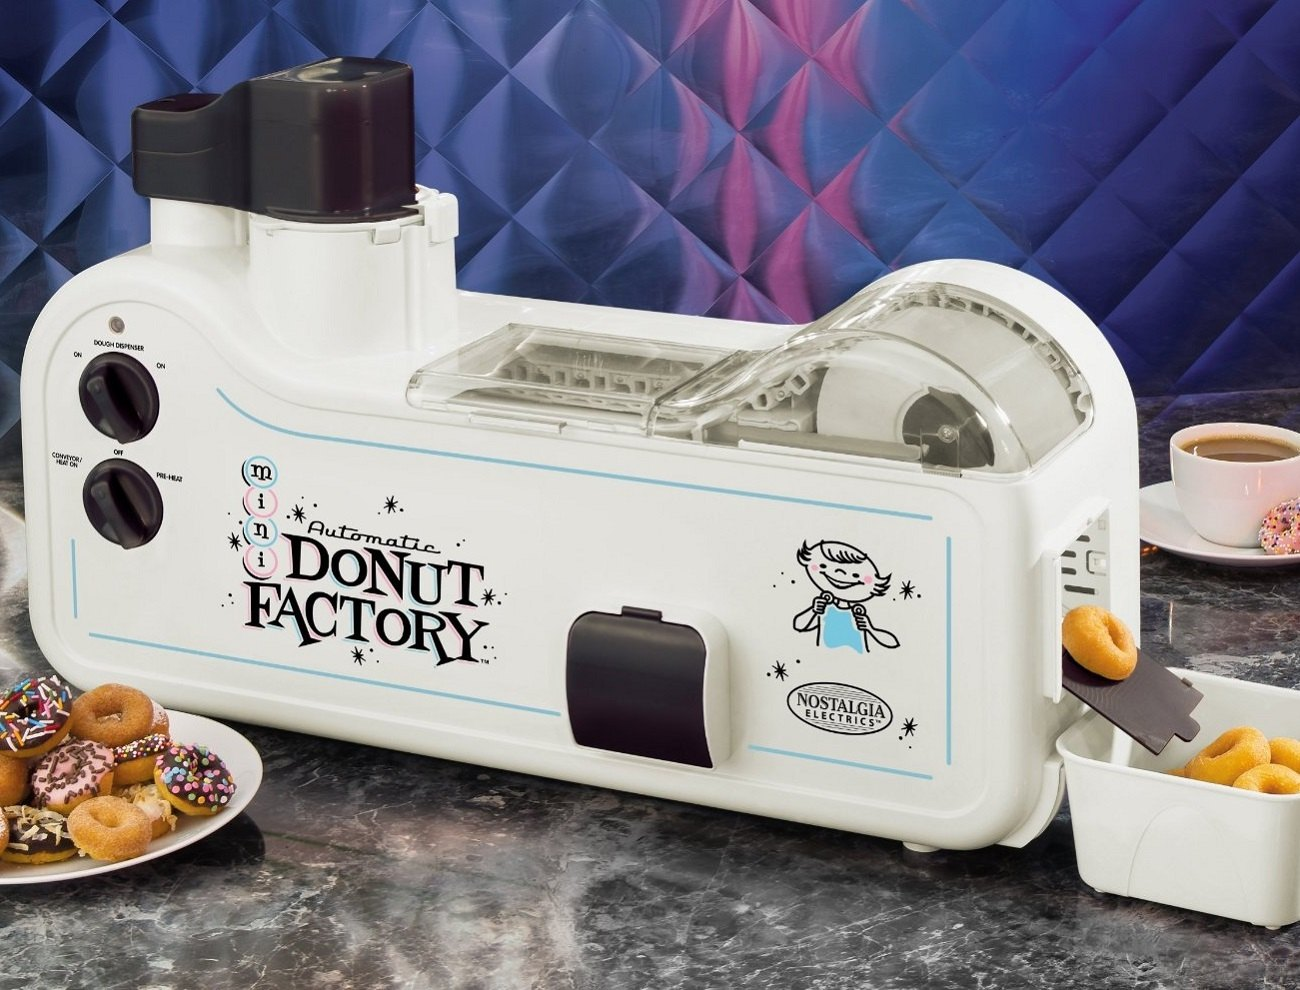 Automatic Mini Donut Factory by Nostalgia Electrics